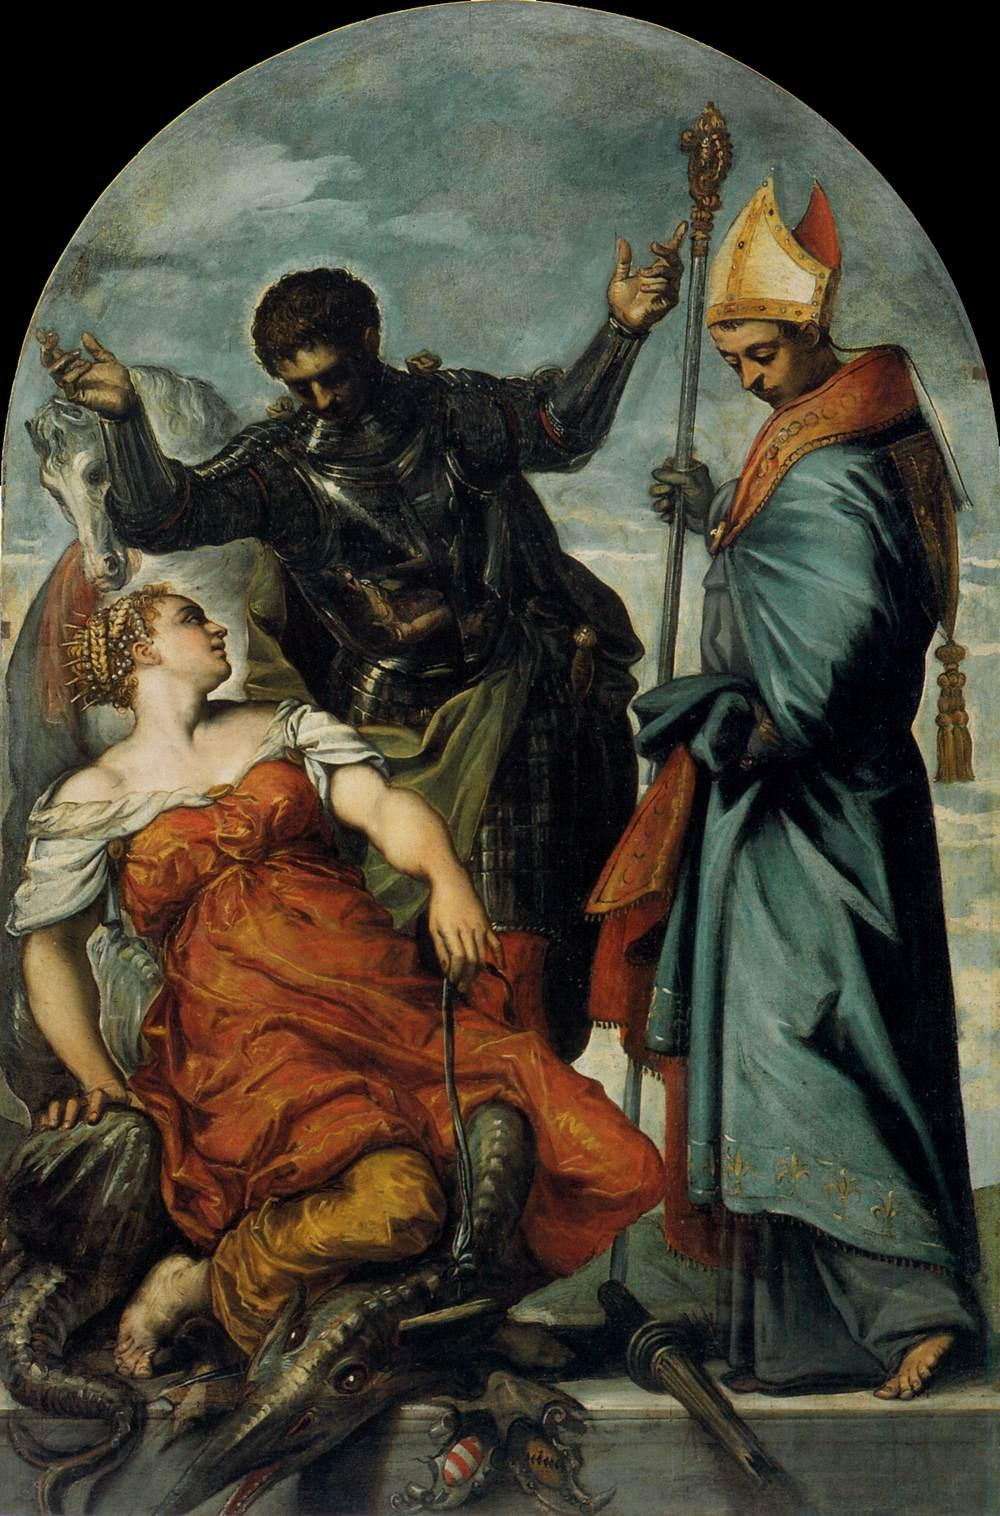 TINTORETTO St Louis, St George, and the Princess c. 1553 Oil on canvas, 226 x 146 cm Gallerie dell'Accademia, Venice